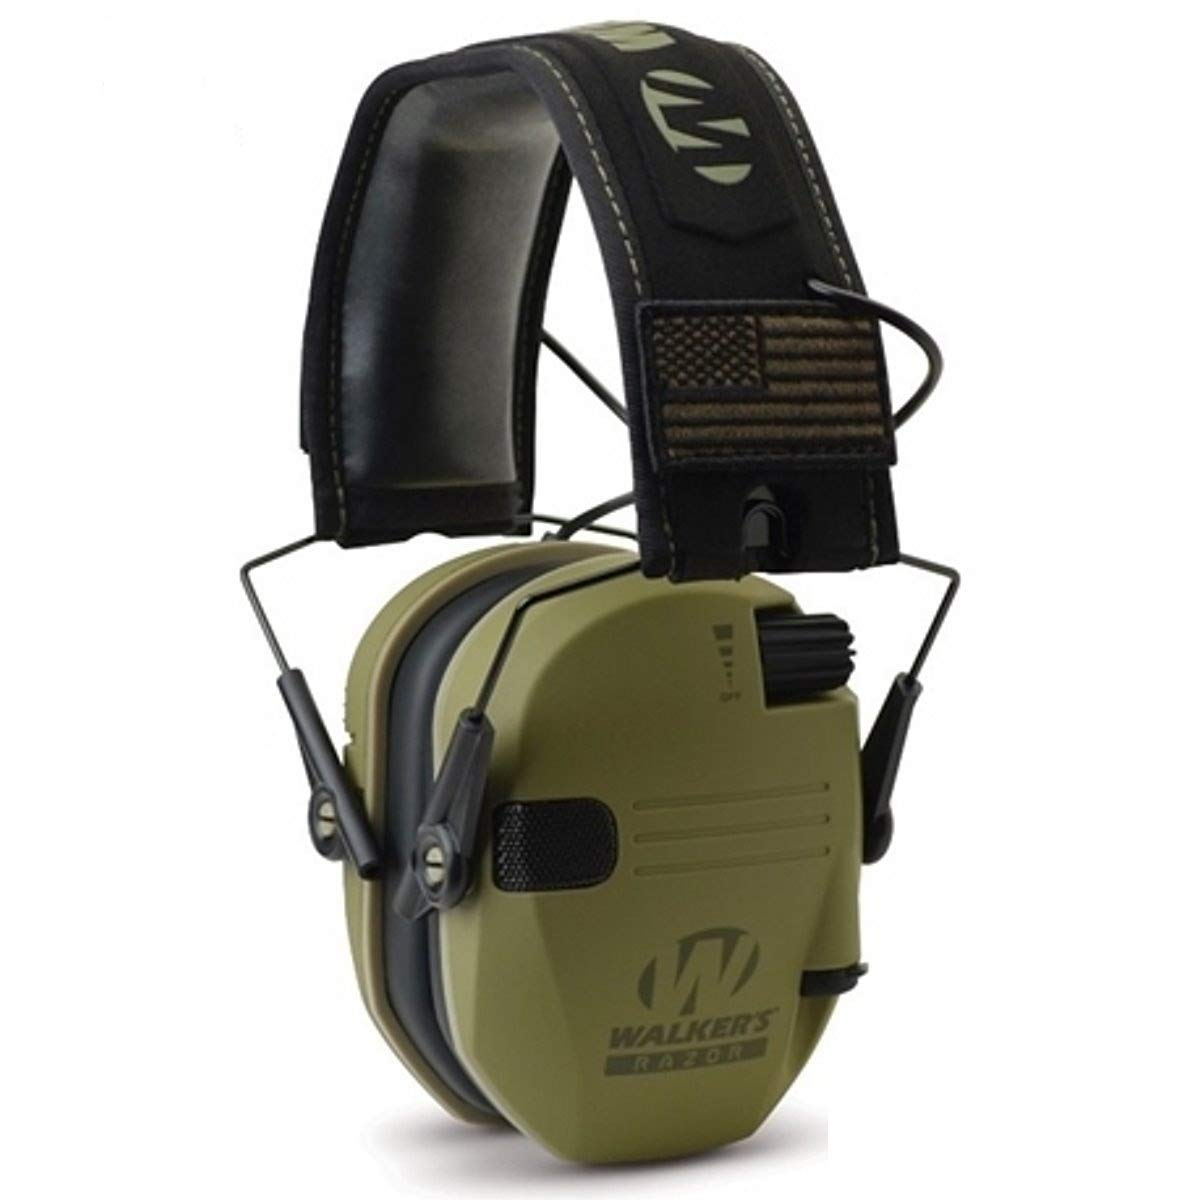 Walkers Razor Slim Electronic Hearing Protection Muffs with Sound Amplification and Suppression and Shooting Glasses Kit, OD Olive Drab Green Patriot by Walkers (Image #3)